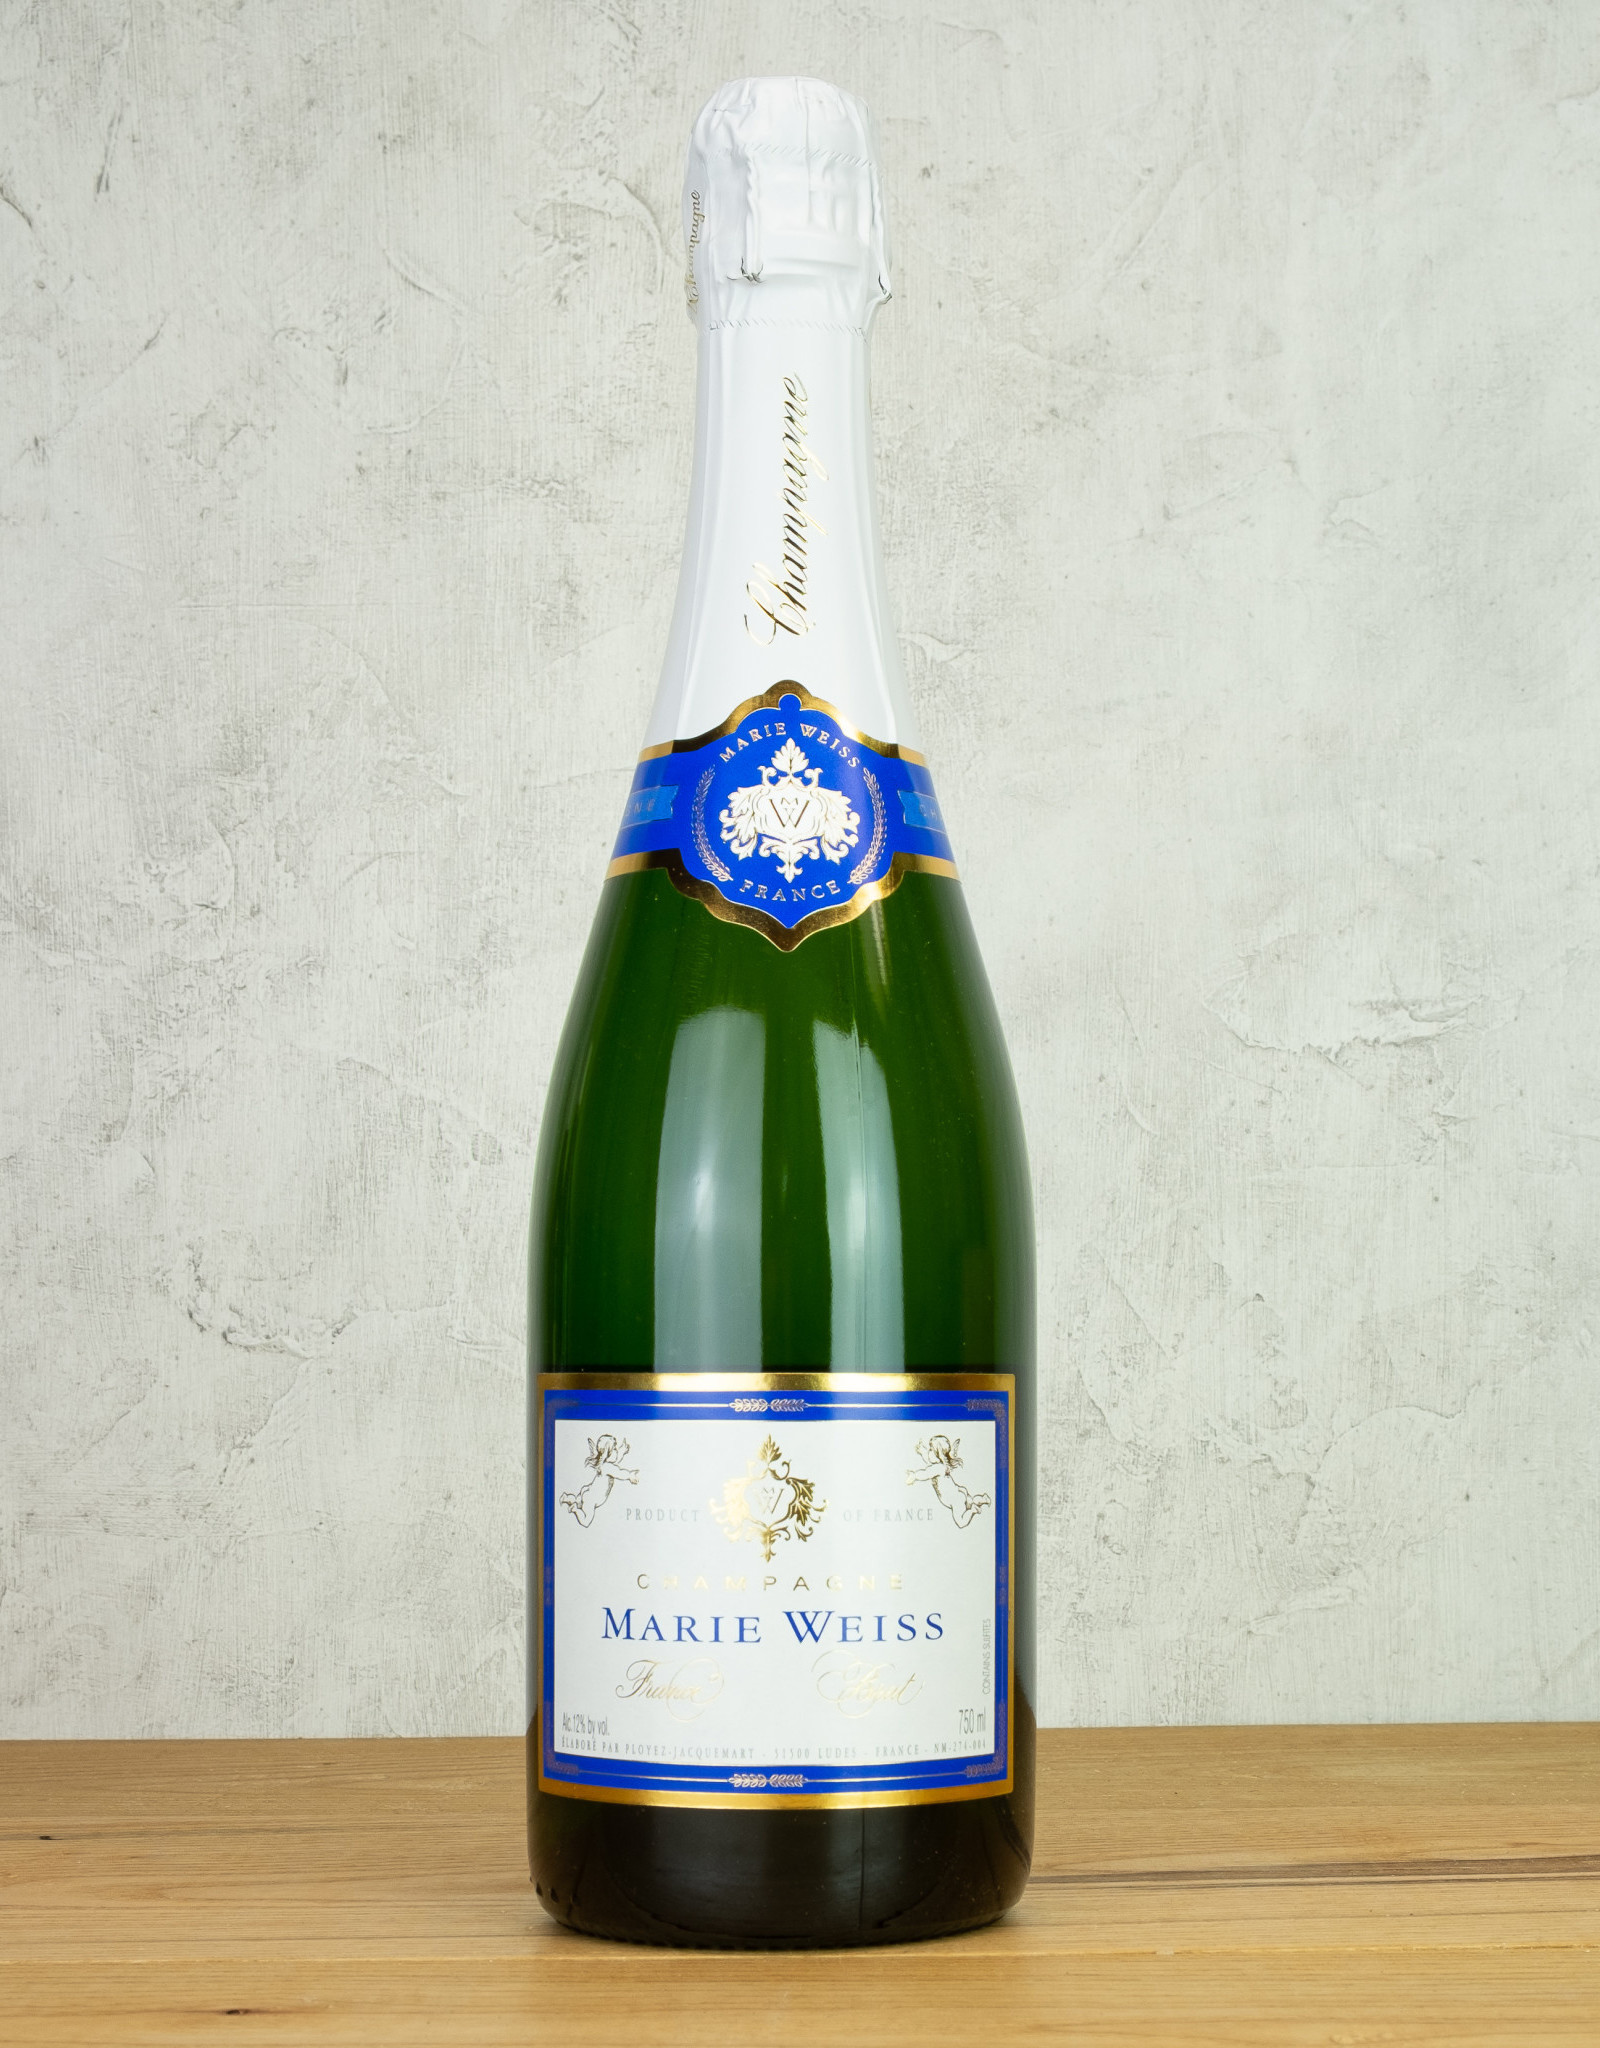 Marie Weiss Champagne Brut NV